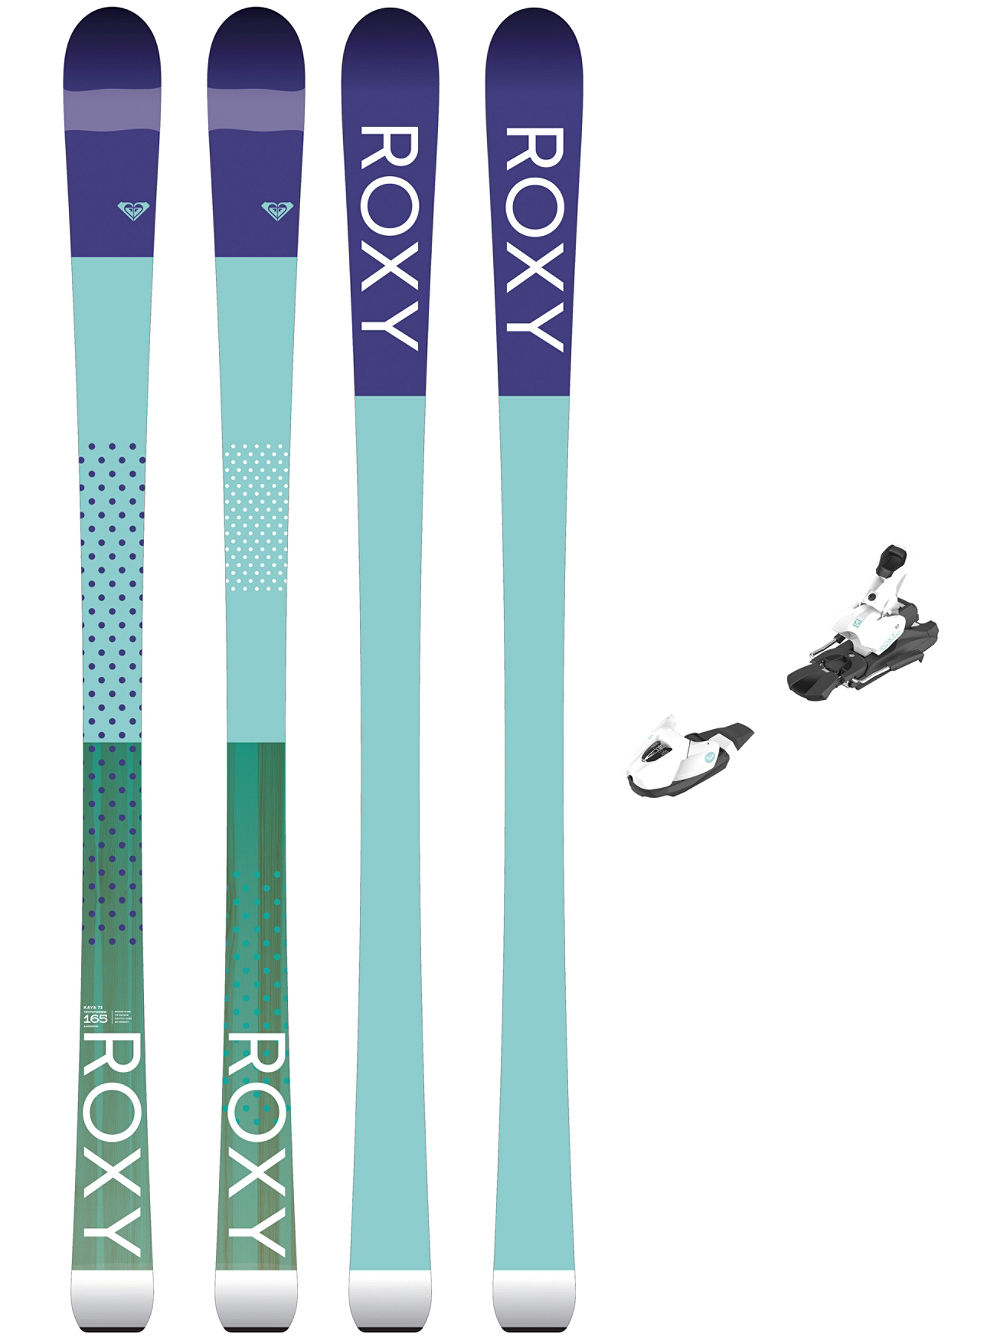 Kaya 72 165 + L7 Ezytrak 2018 Freeski-Set